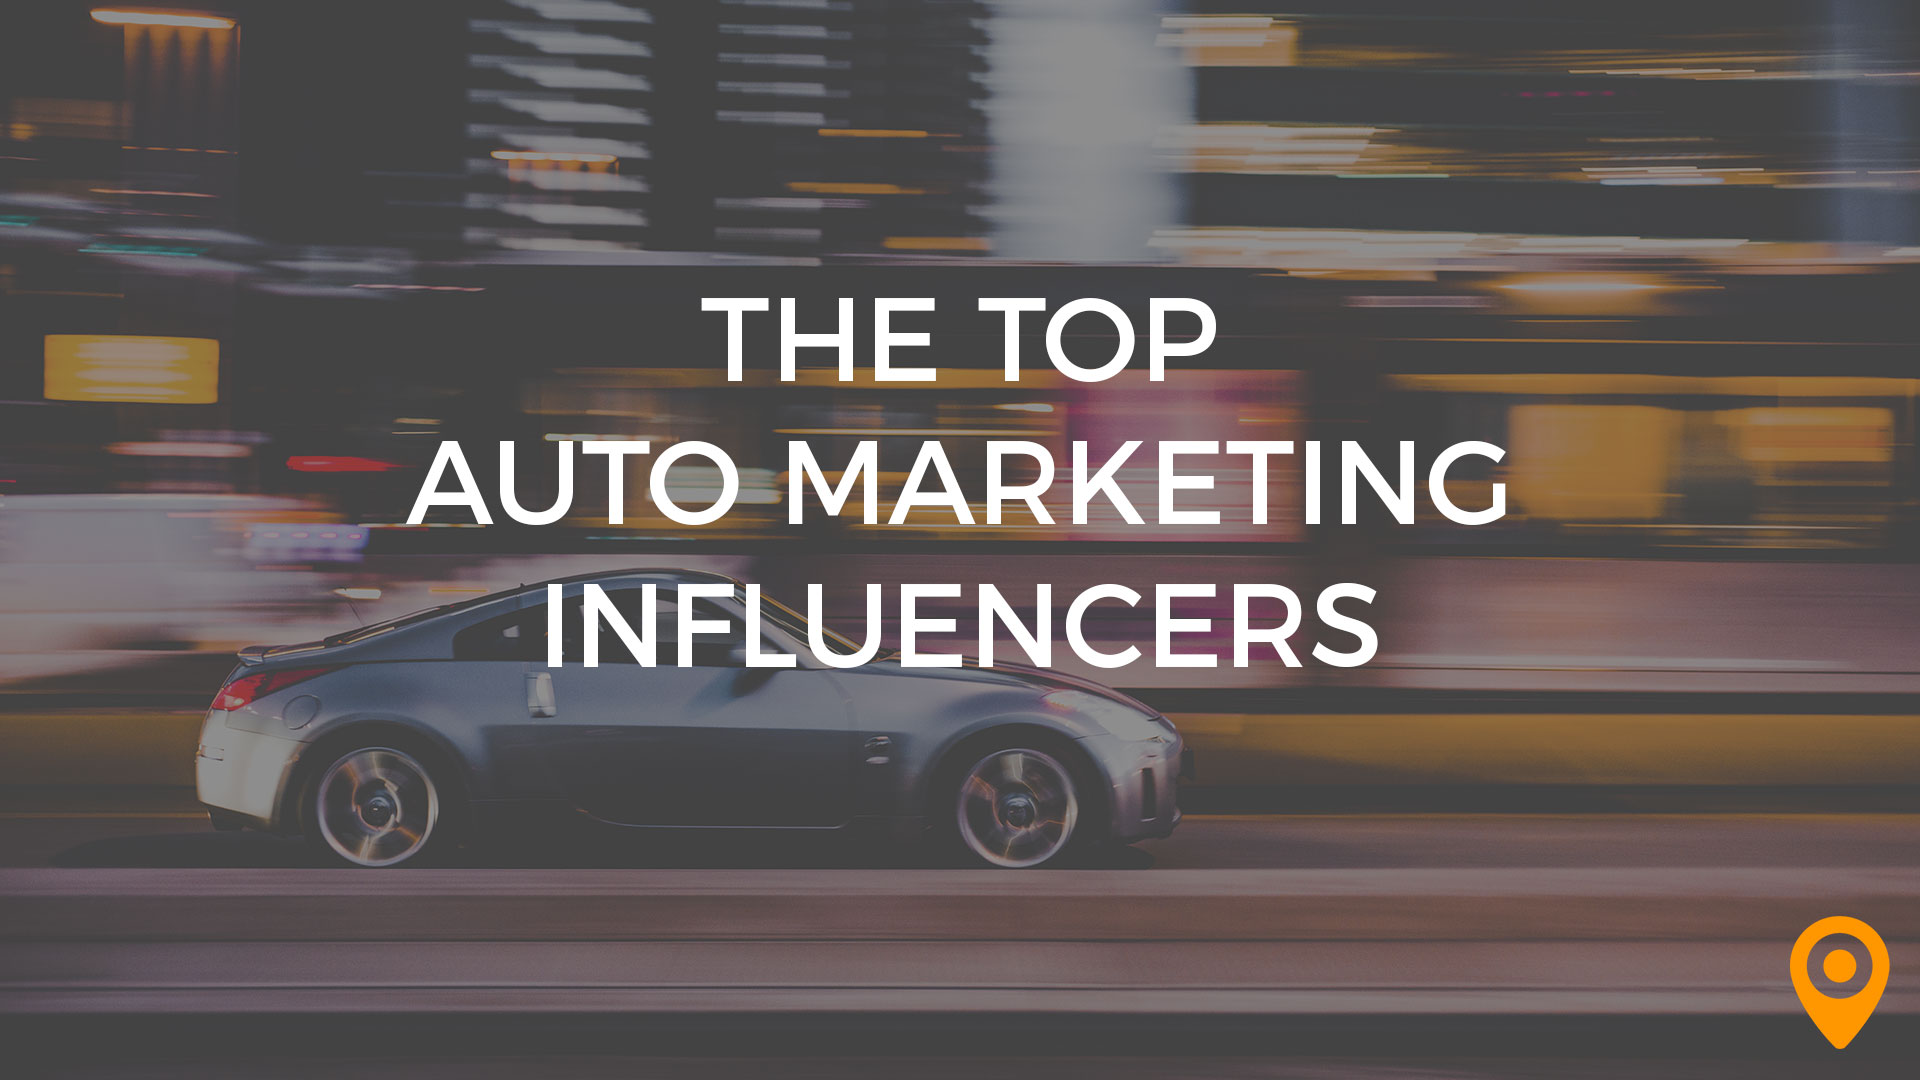 The Top Auto Marketing Influencers